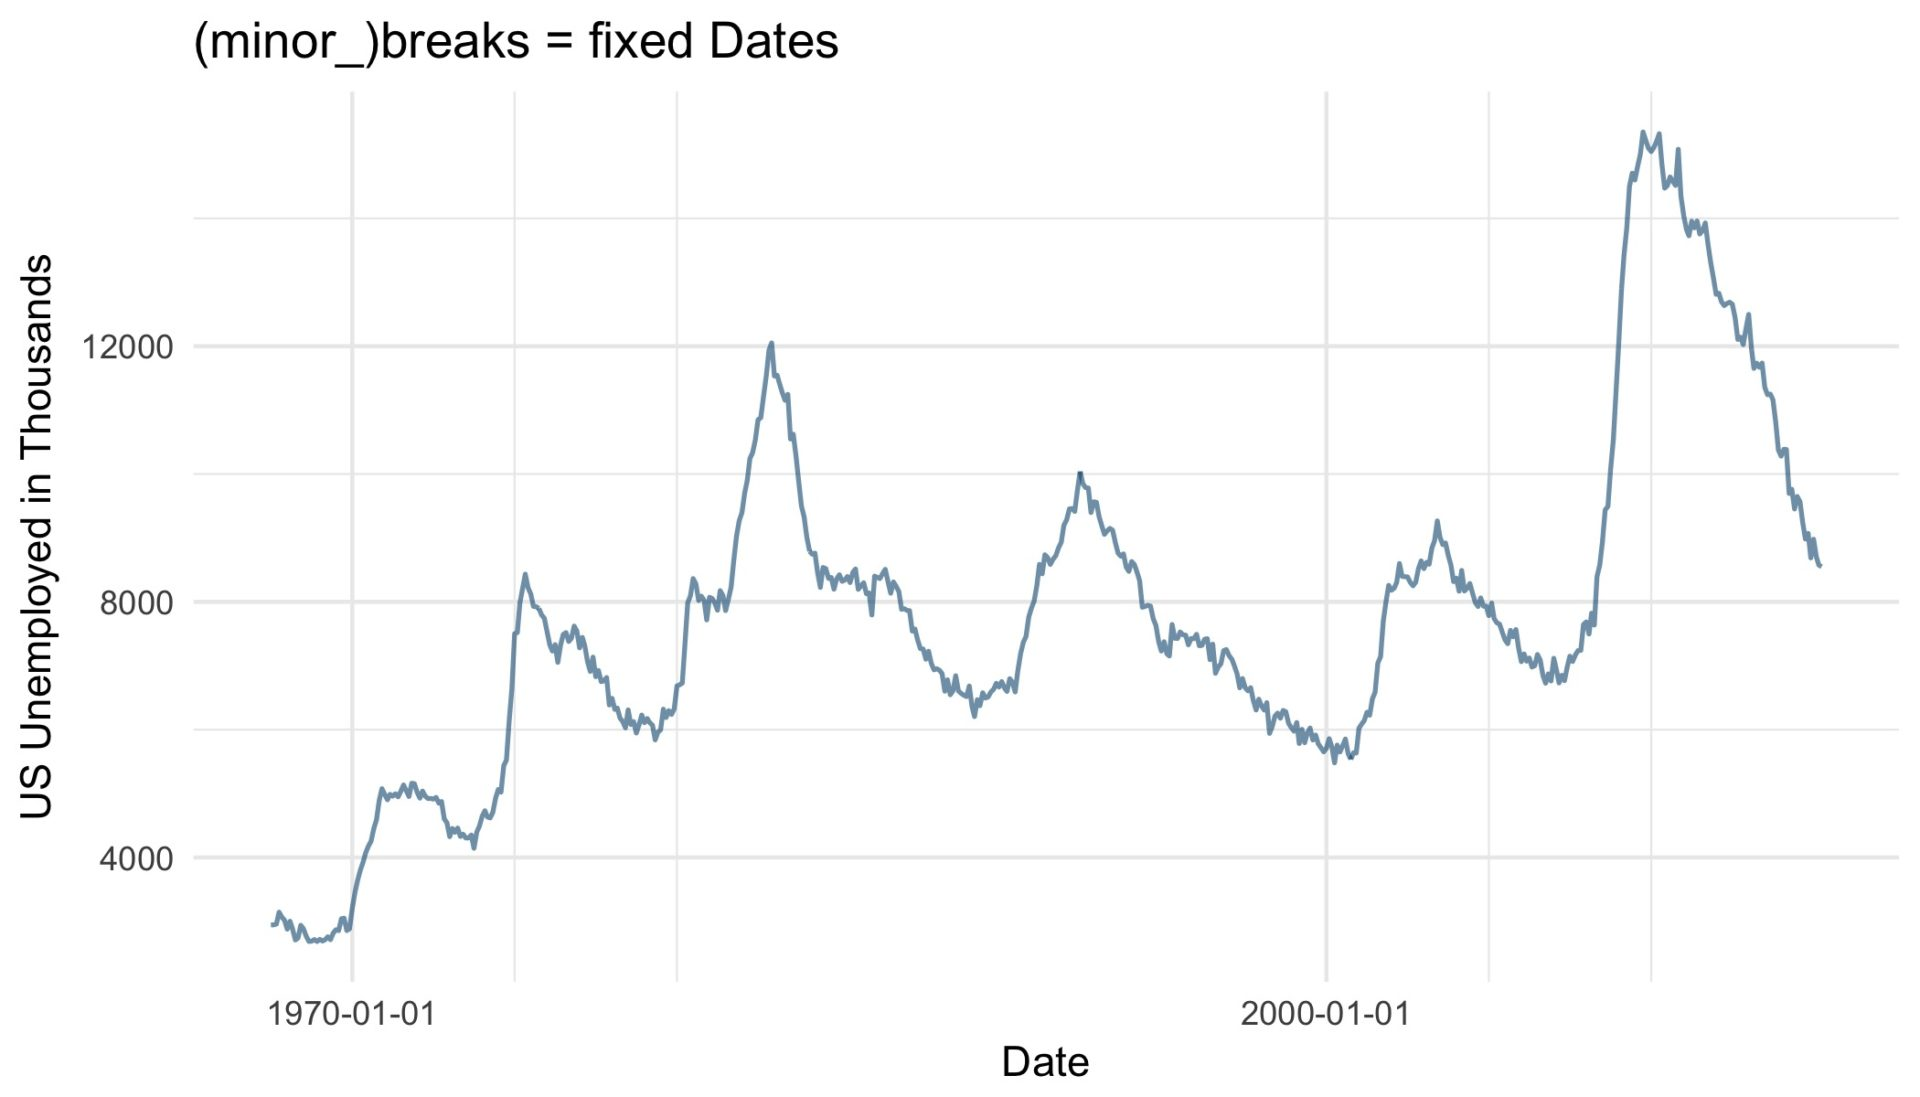 ggplot-breaks-fixed-dates